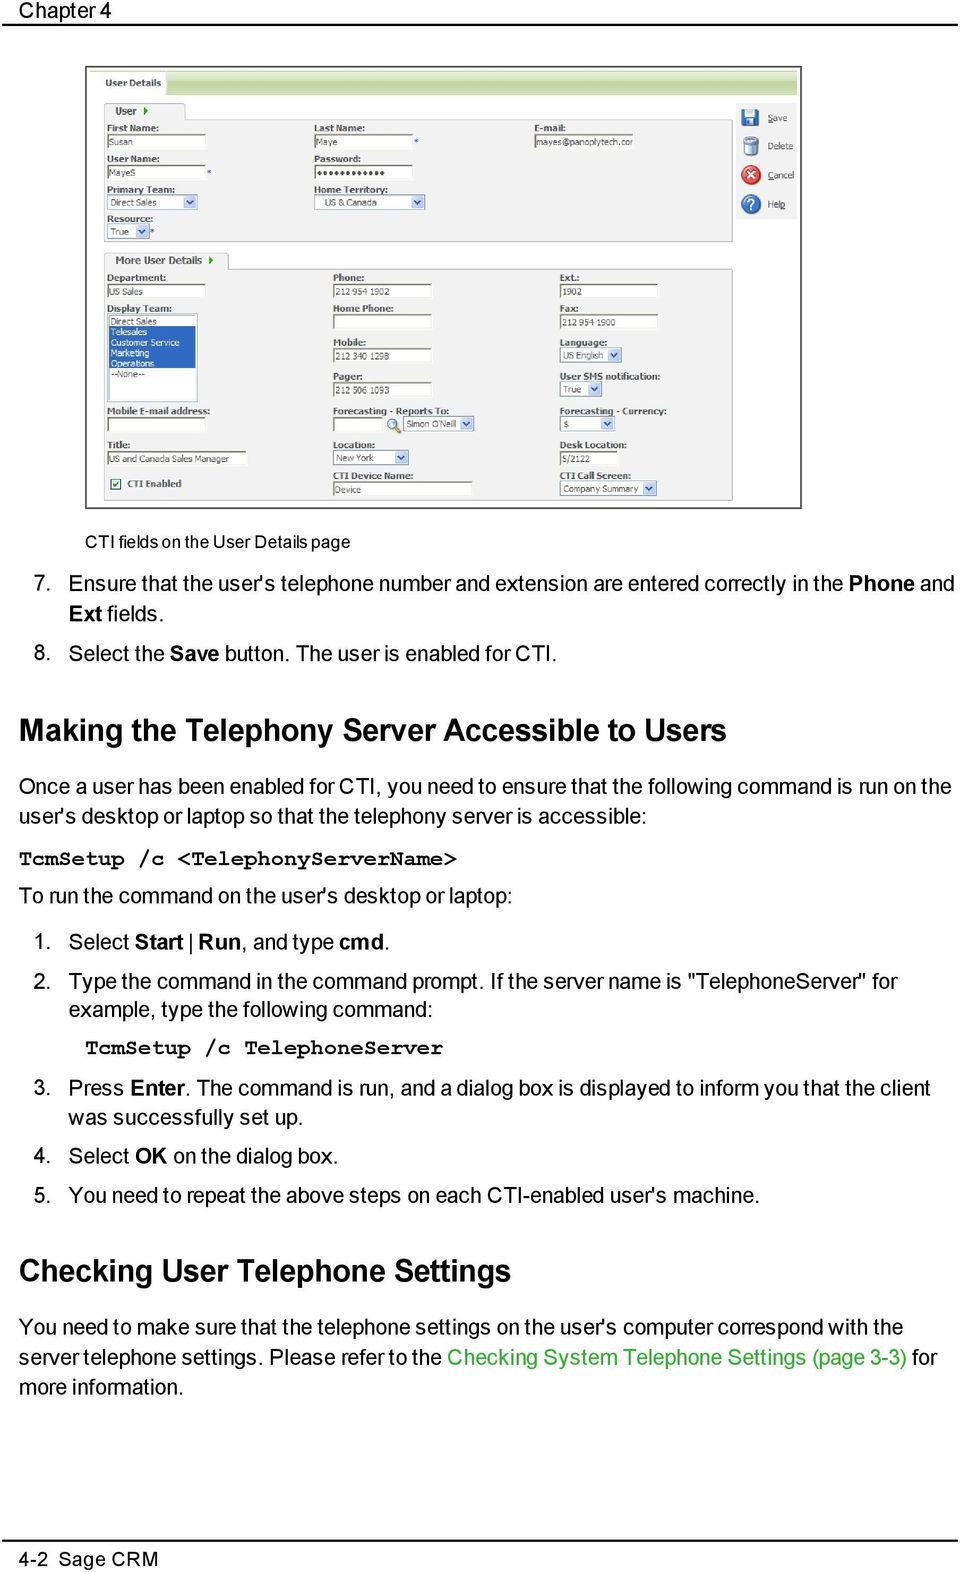 Making the Telephony Server Accessible to Users Once a user has been enabled for CTI, you need to ensure that the following command is run on the user's desktop or laptop so that the telephony server